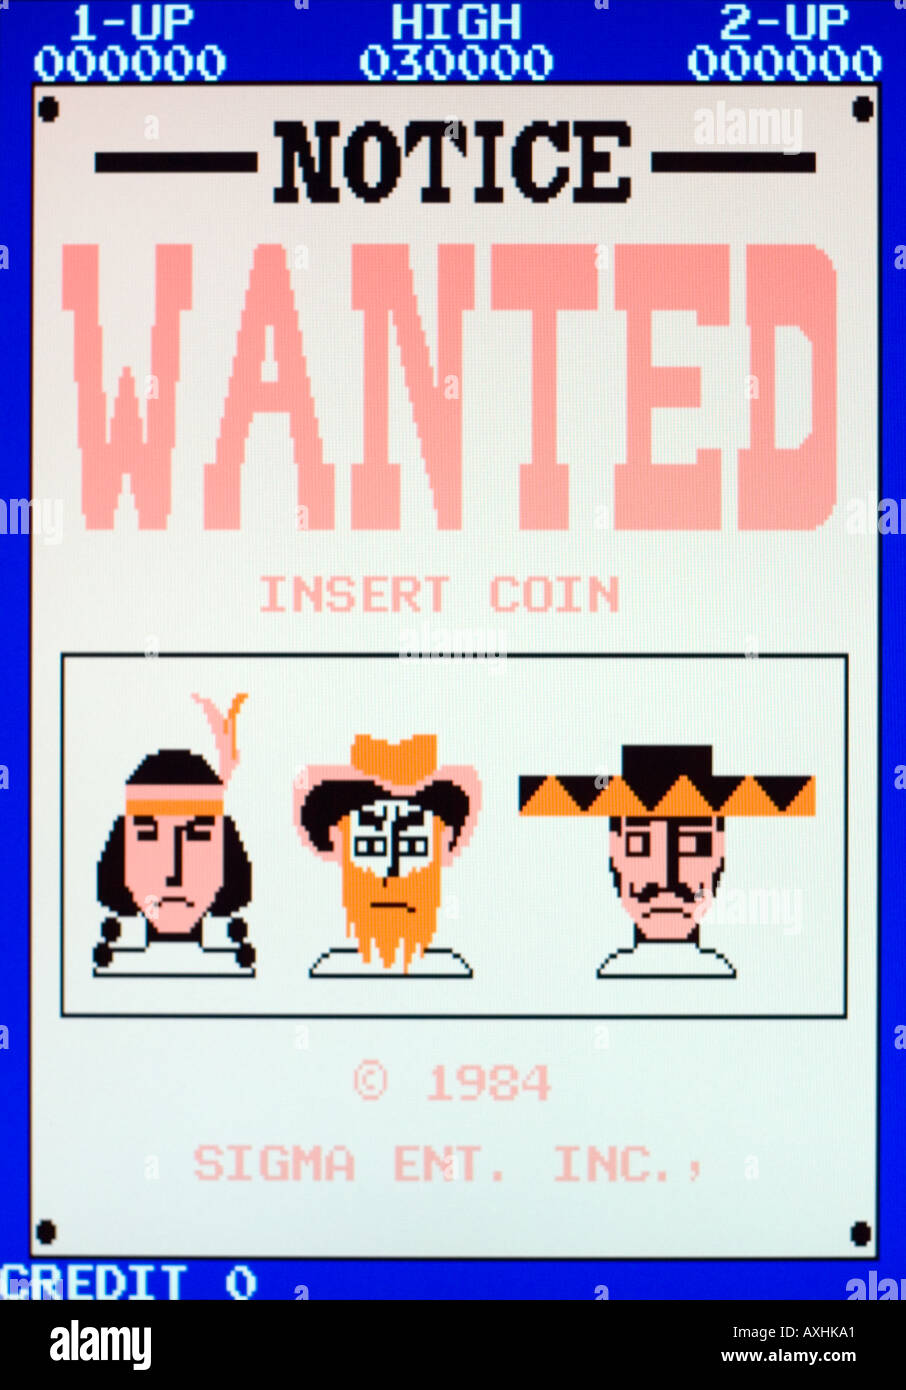 Wanted Sigma Ent Inc 1984 Vintage arcade videogame screen shot - EDITORIAL USE ONLY - Stock Image